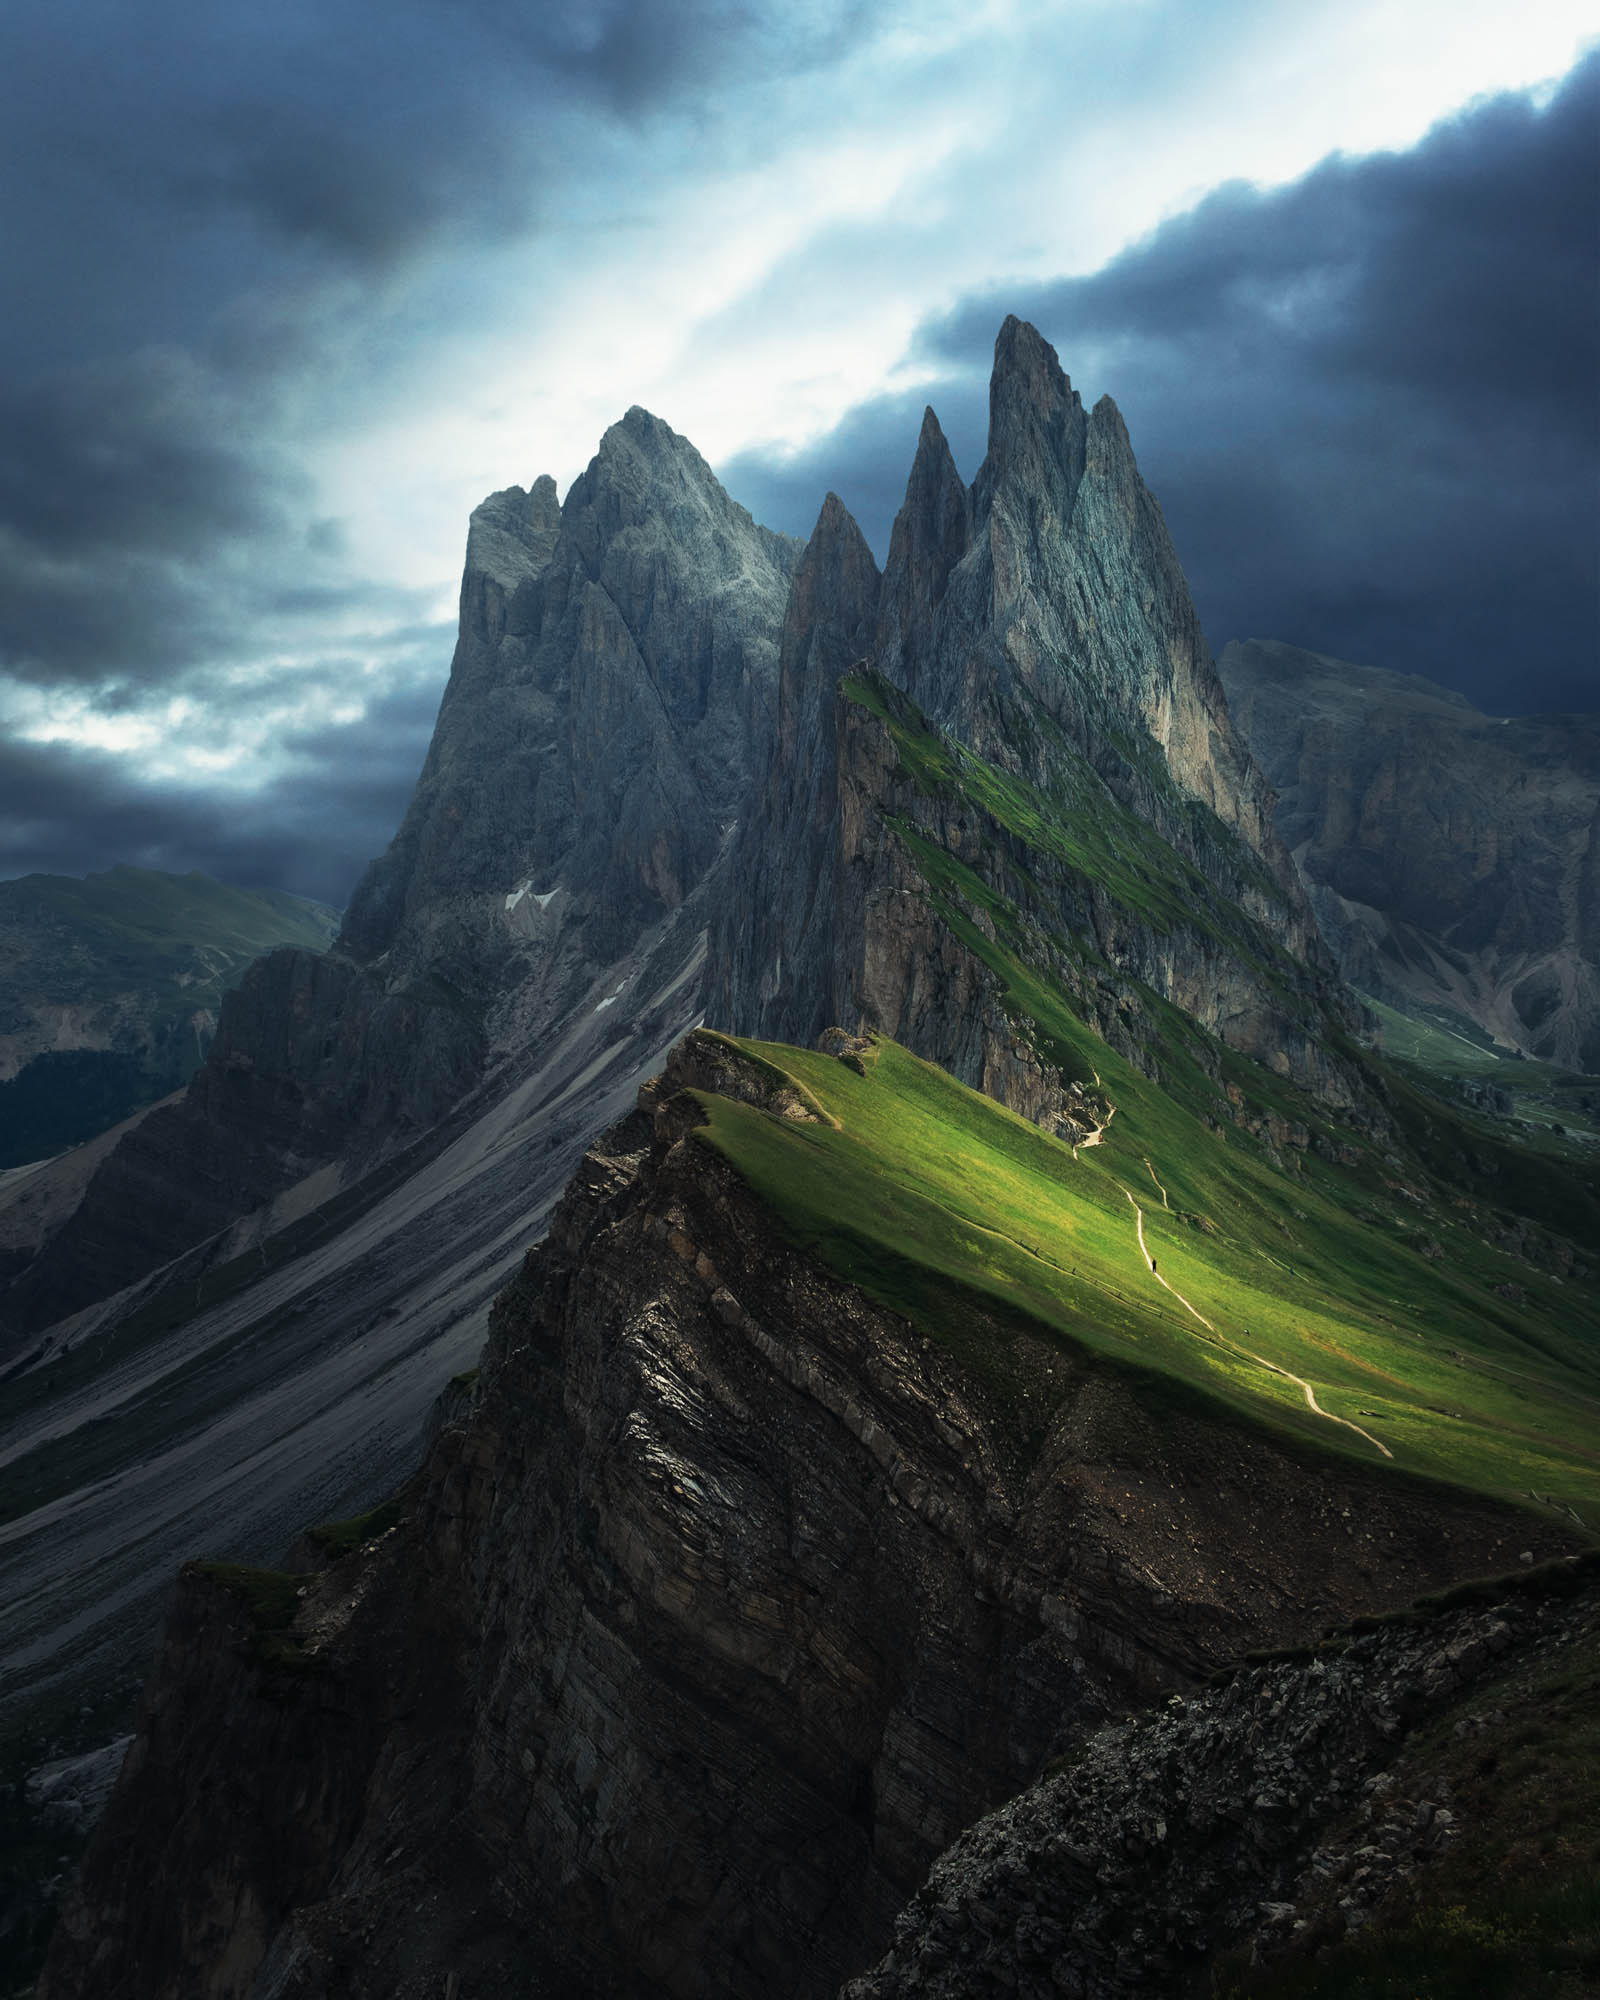 A picture of the Seceda mountain range in the northern Italian Dolomites. It is very dark and moody with light casting on the mountains. There is one man walking on the path.